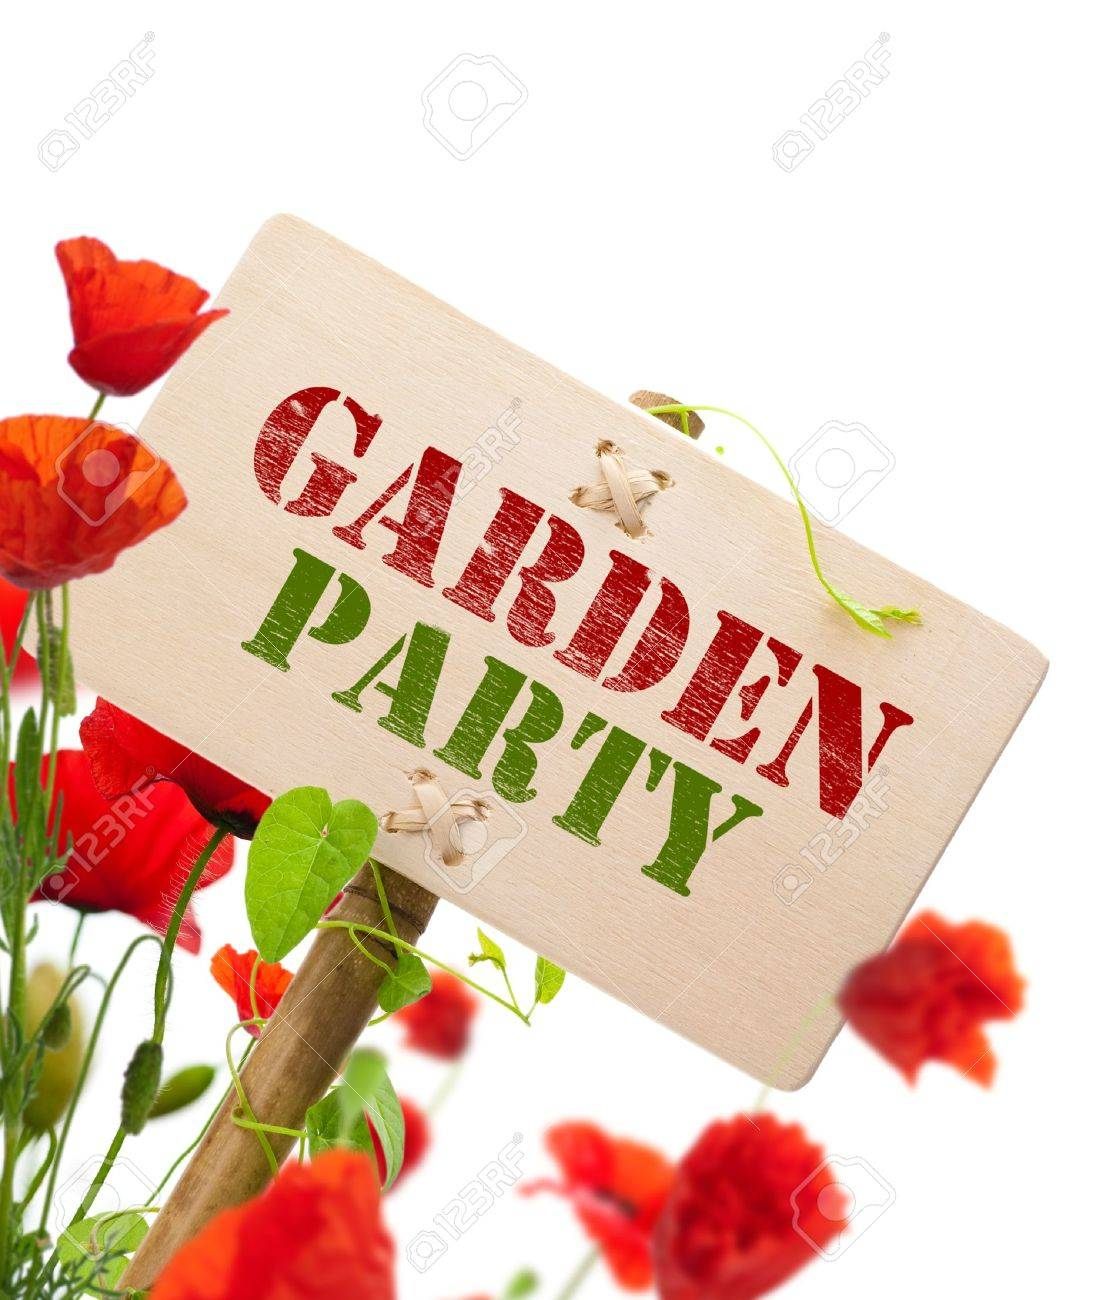 Garden party sign, message on a wooden panel, green plant and poppies - image is isolated on a white background Stock Photo - 9013881